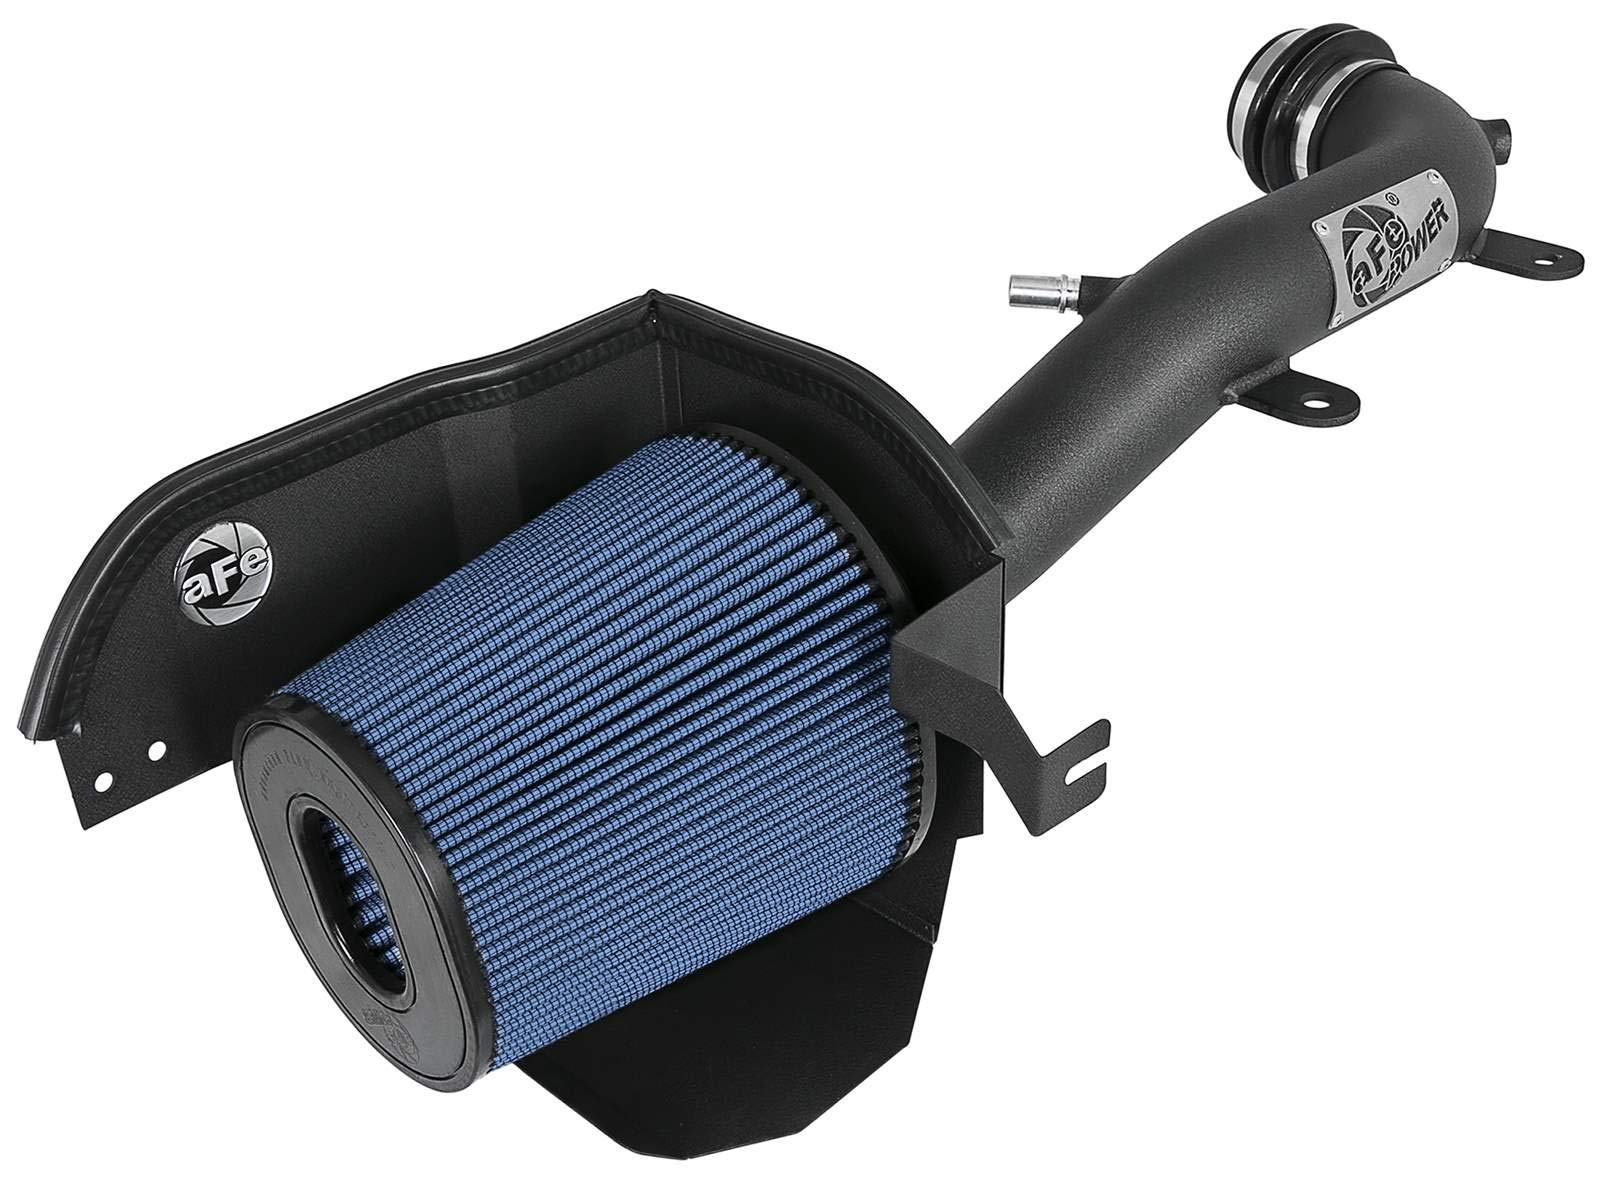 aFe Power 54-13002-B Cold Air Intake System (Non-CARB Compliant), 1 Pack